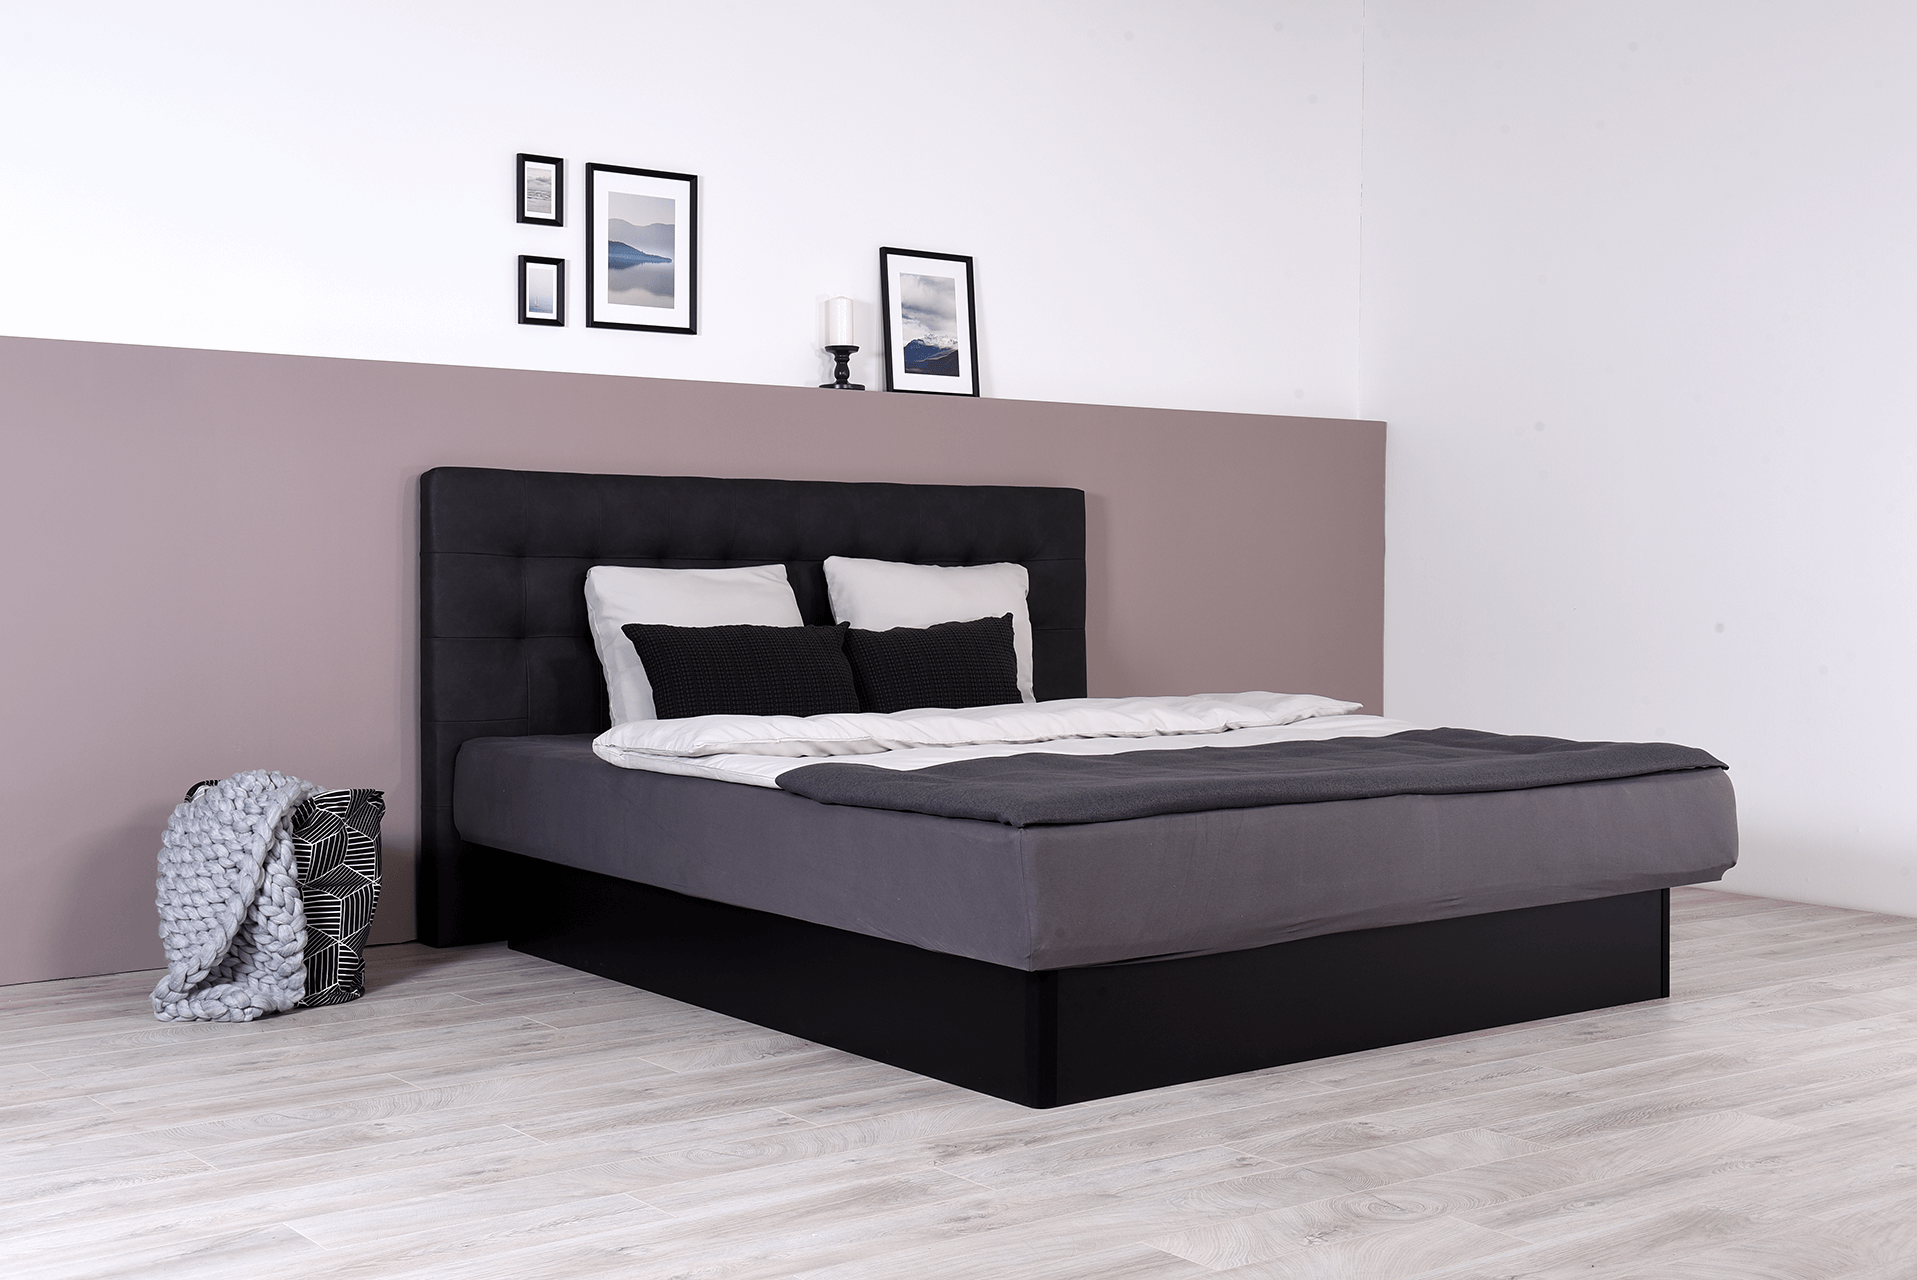 wasserbett mit schwarzem geschlossenen sockel wandpaneel nuevo suma wasserbetten. Black Bedroom Furniture Sets. Home Design Ideas